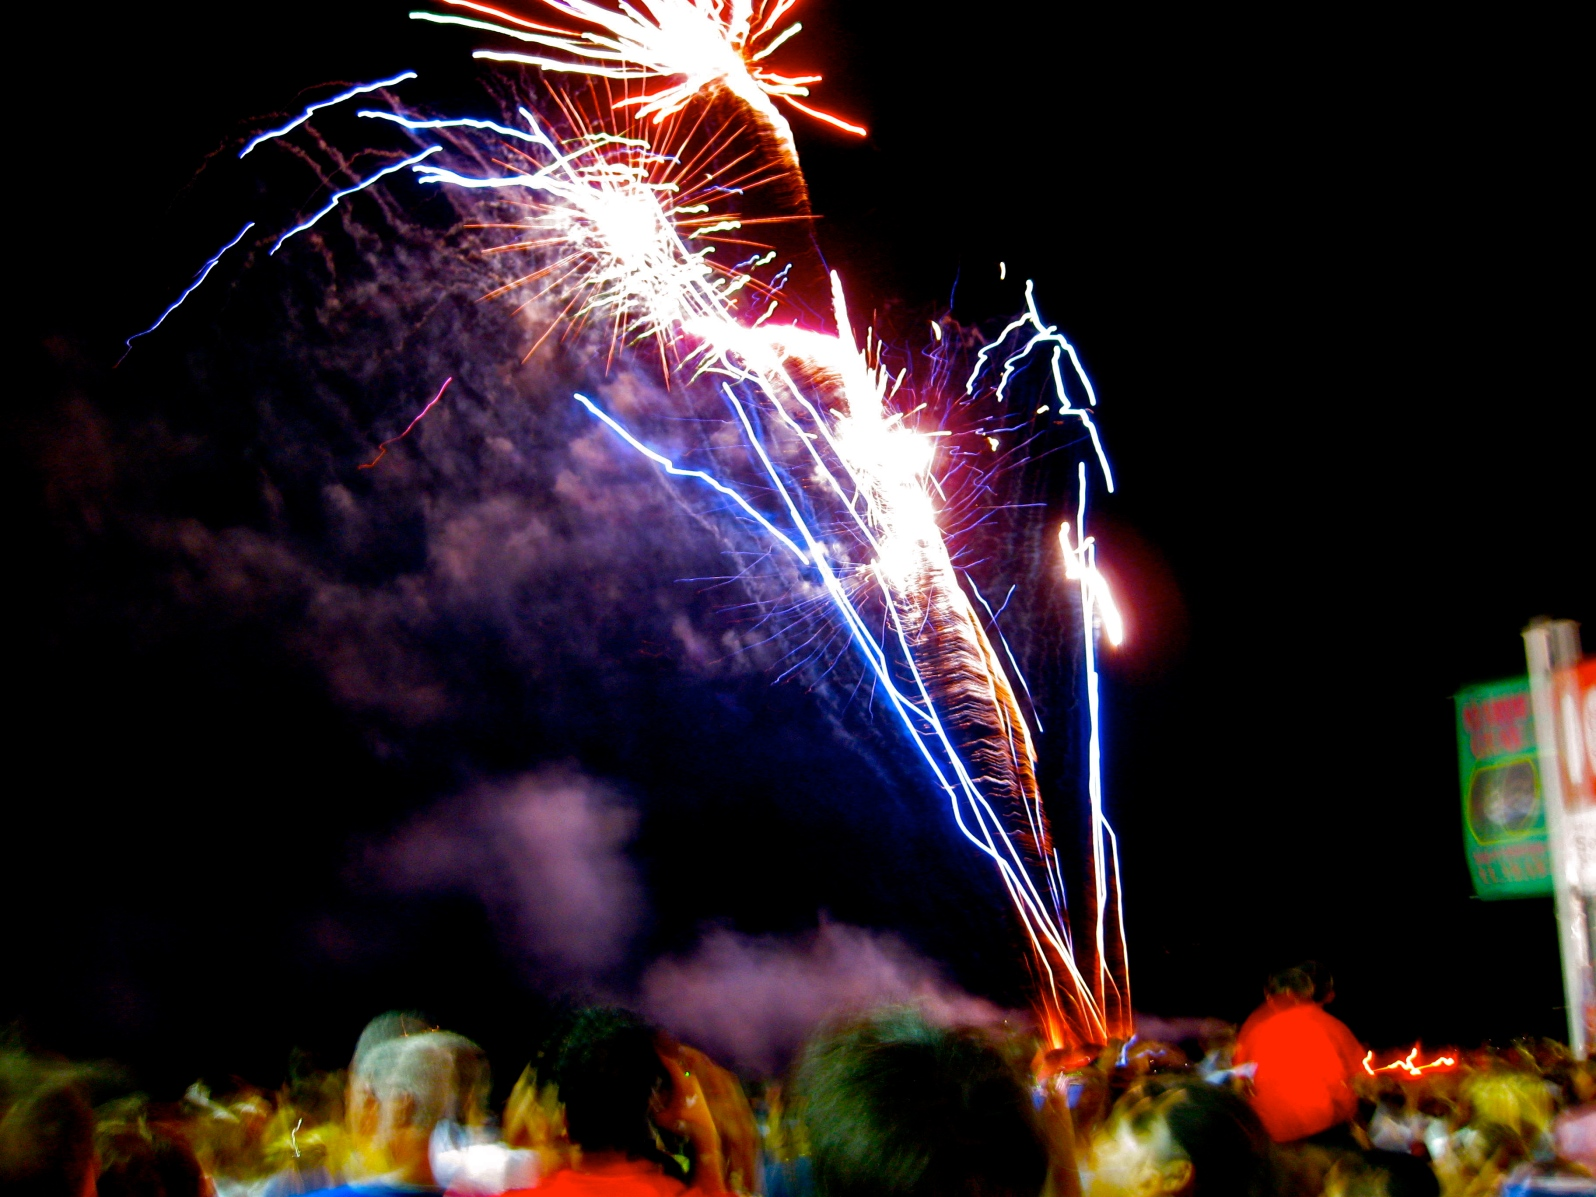 Fireworks from Casino Pier, Seaside Heights, NJ